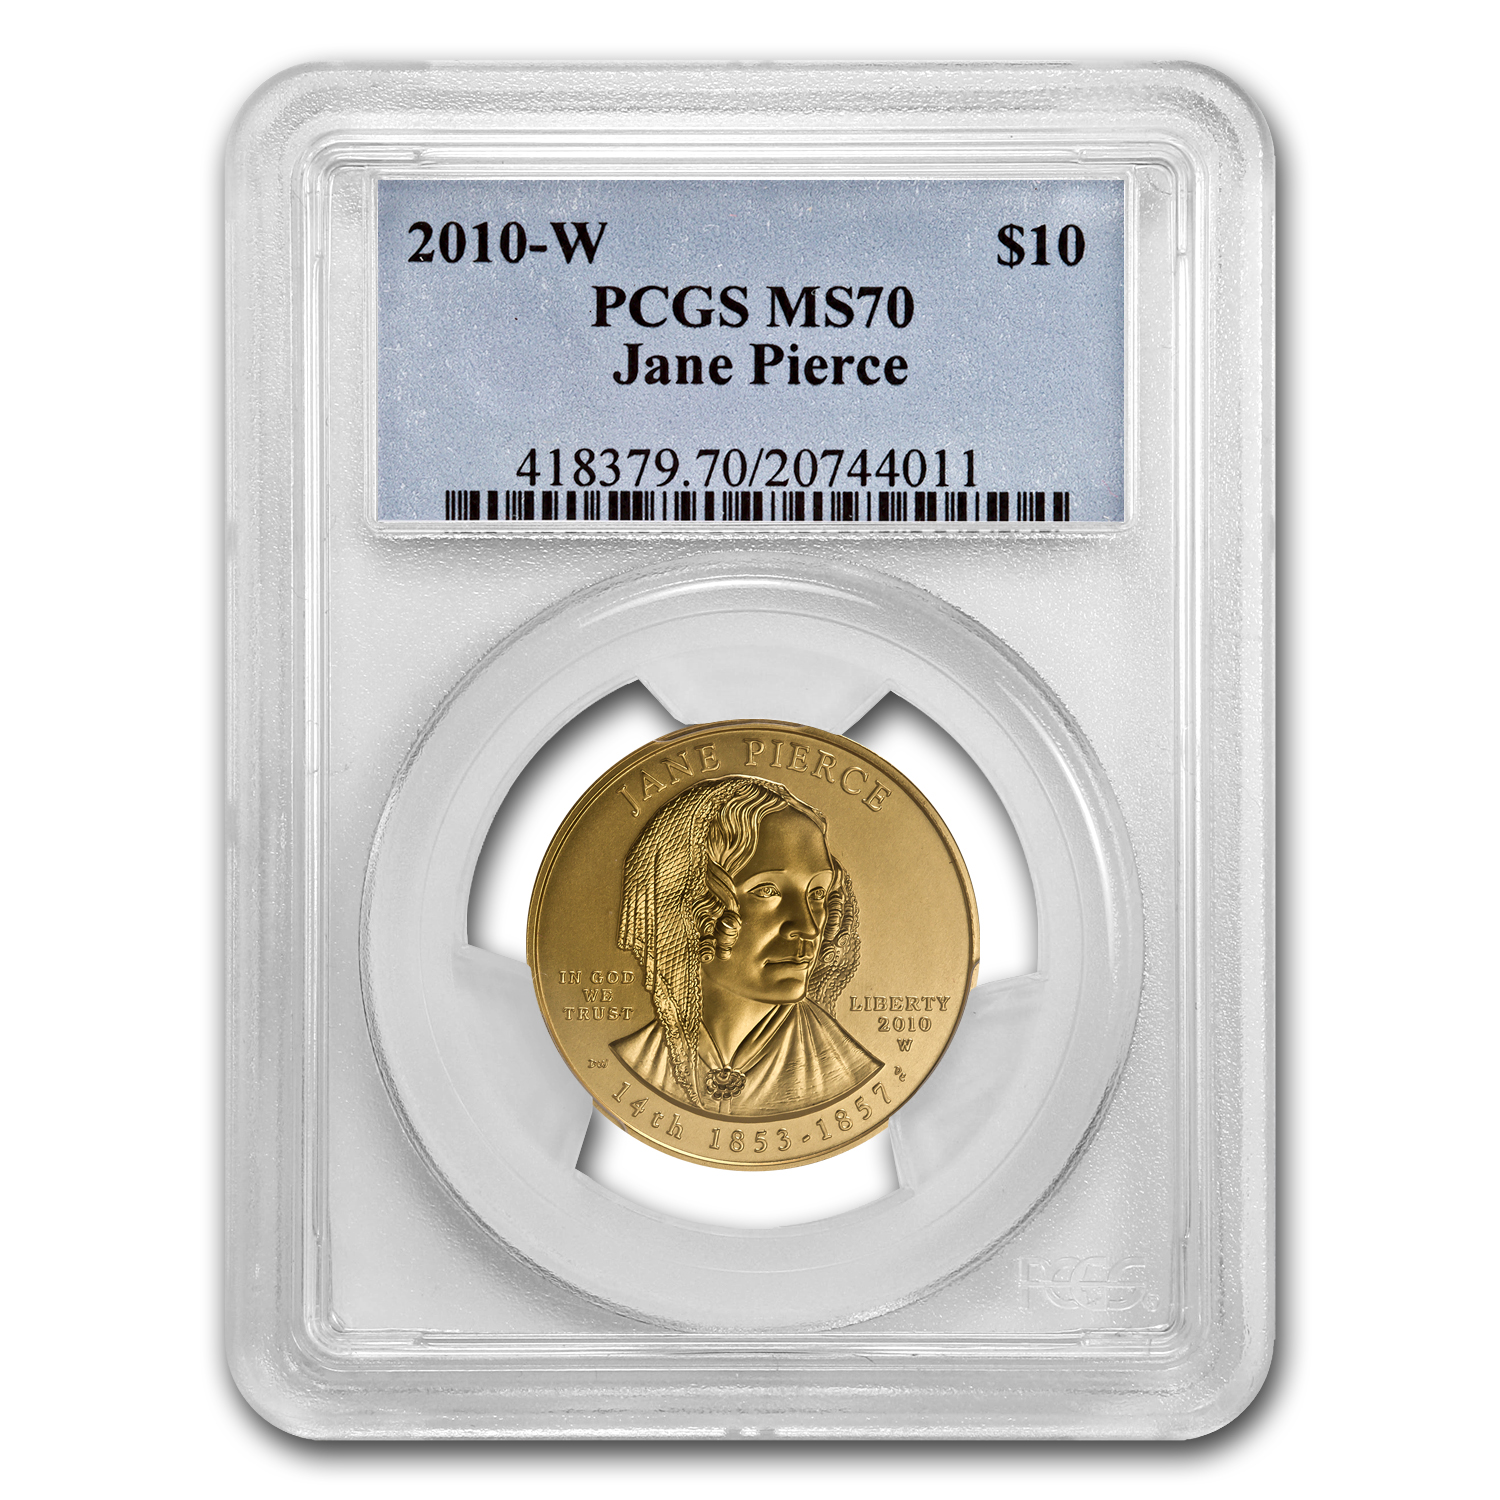 2010-W 1/2 oz Gold Jane Pierce MS-70 PCGS